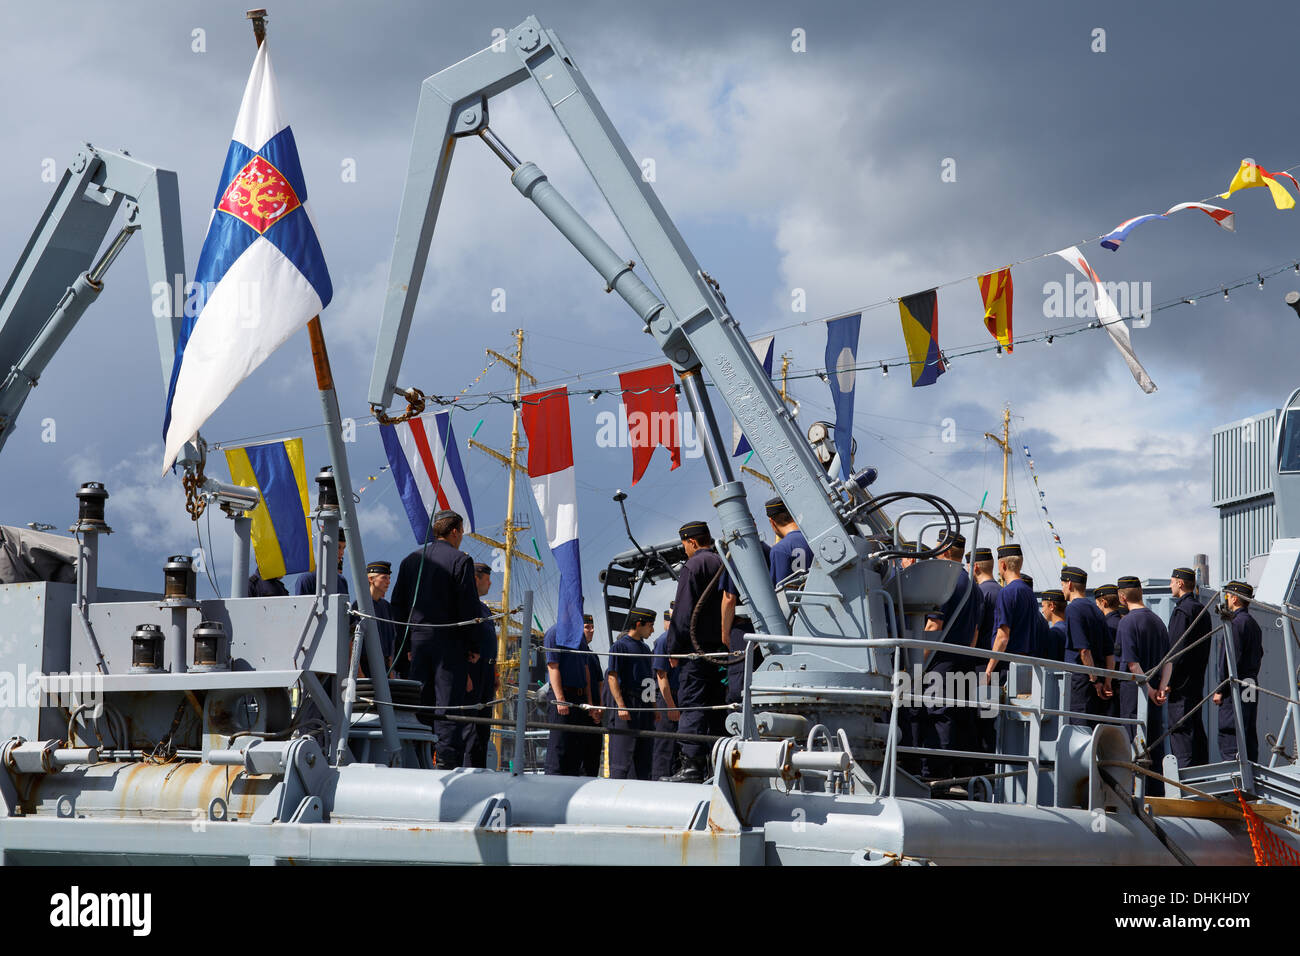 Orders given to staff aboard minelayer FNS Pohjanmaa, the former flagship of the Finnish Navy, in the Tall Ships Races of 2013. - Stock Image